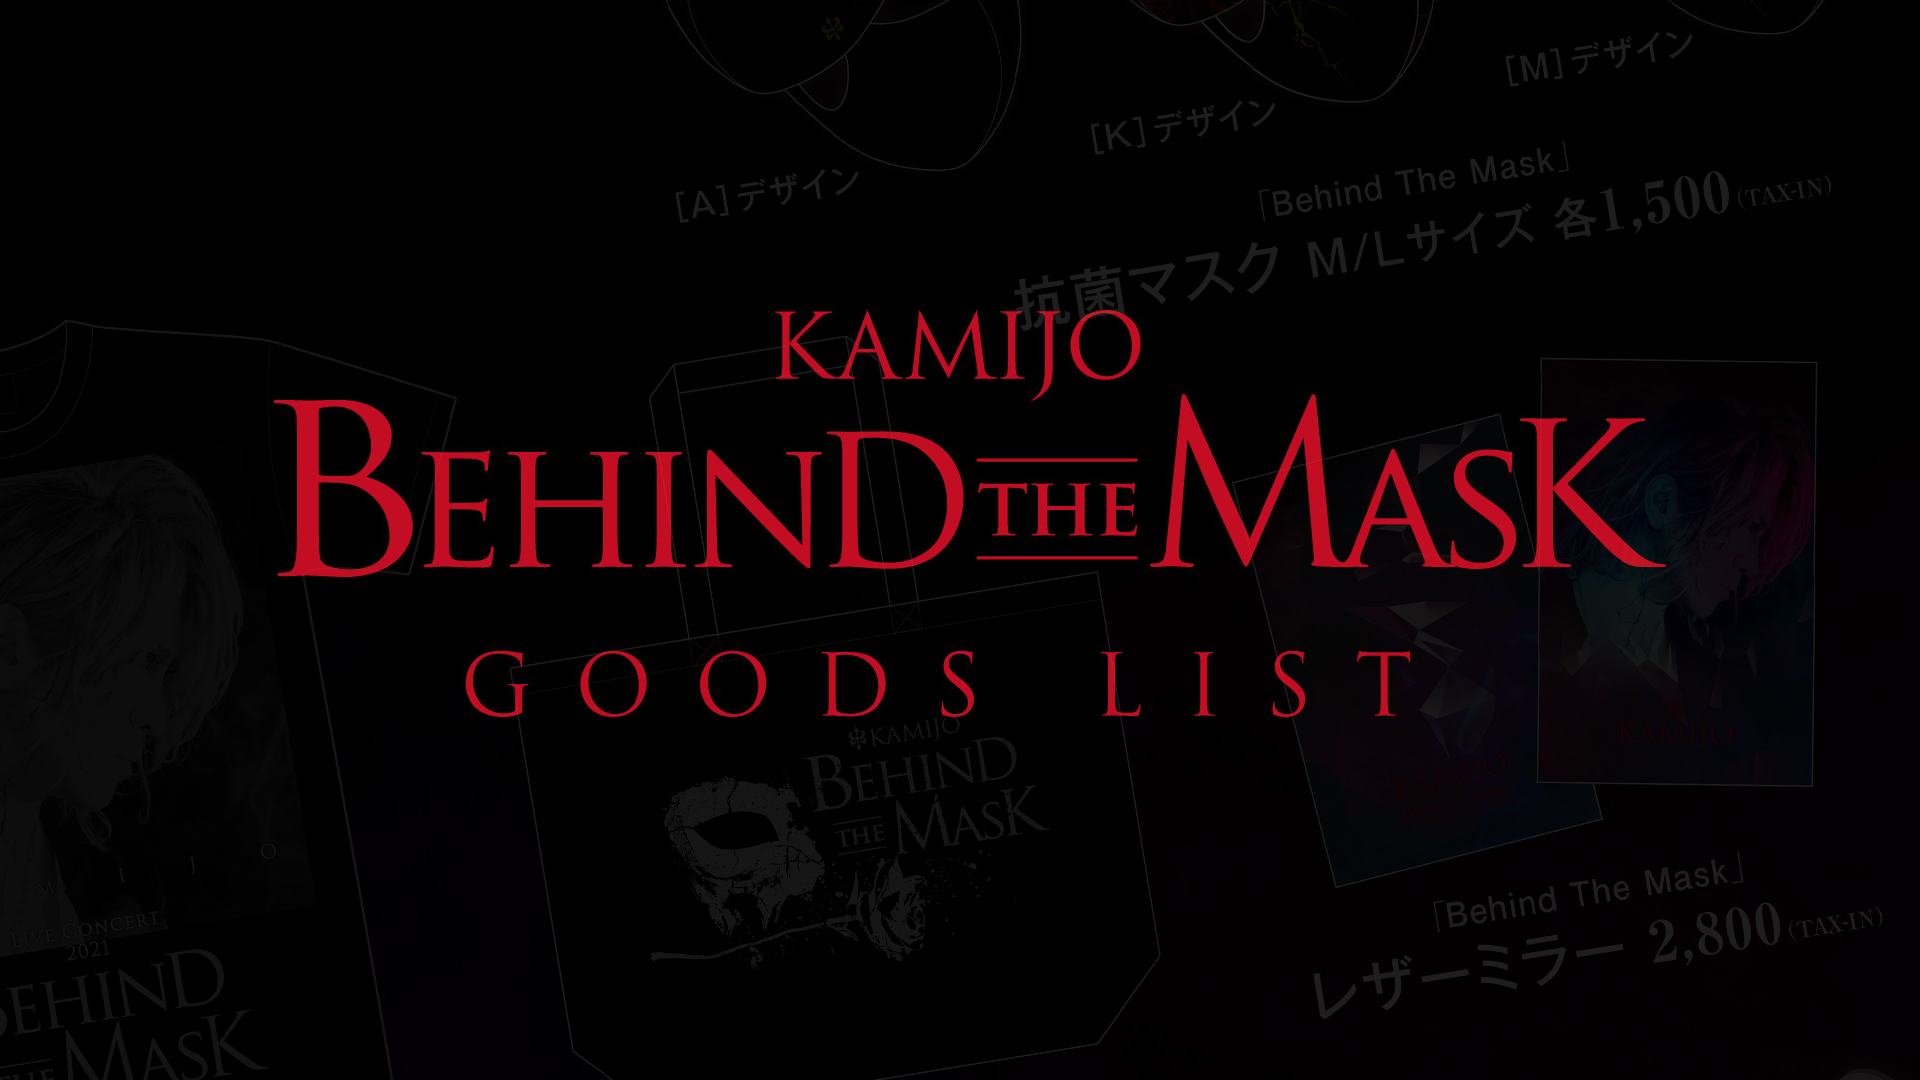 Behind the Mask goods